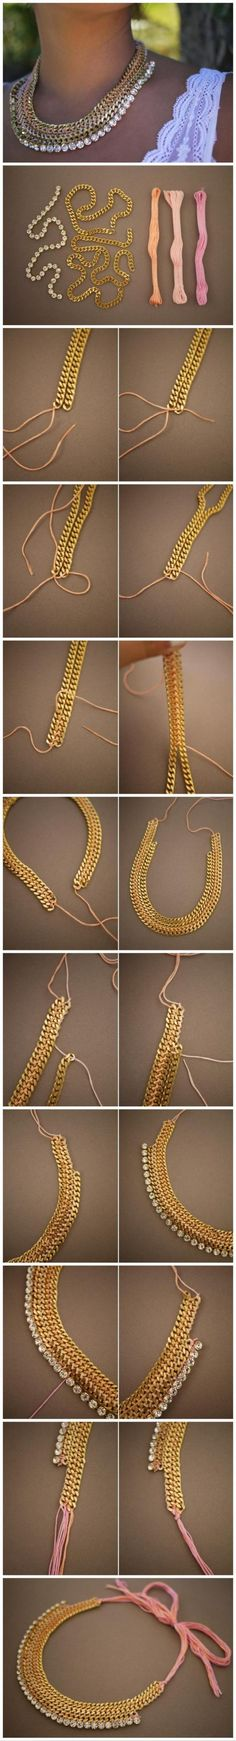 diy your own necklace